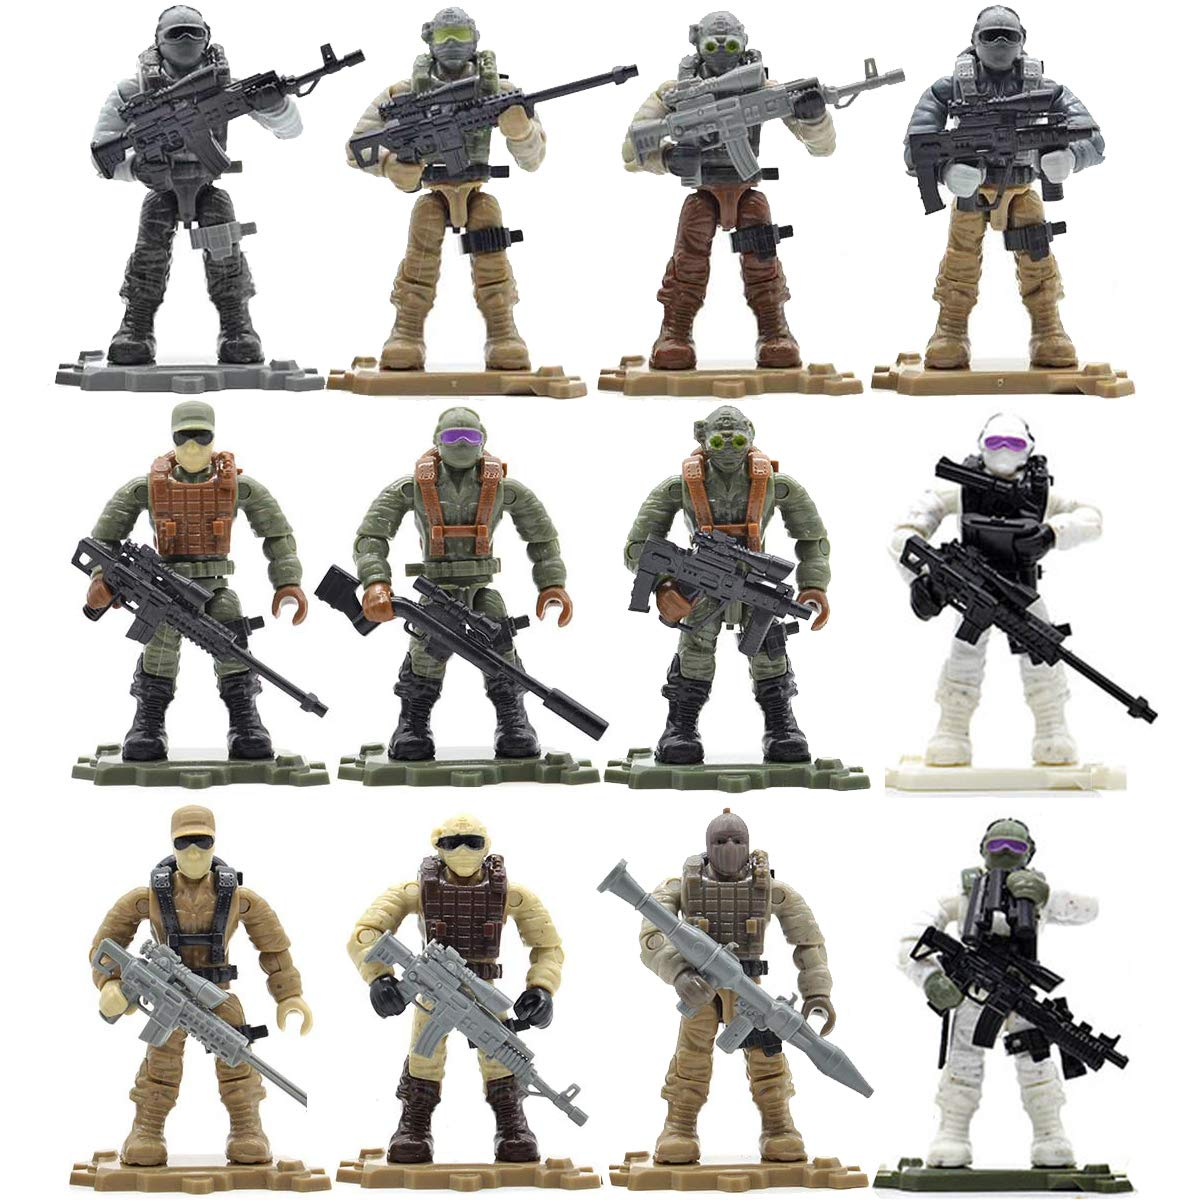 Liberty Imports Special Forces Military Soldiers Troop Building Set - Army Men Micro Figures Action Figurines with Weapons and Accessories in Surprise Eggs (12 Pack)